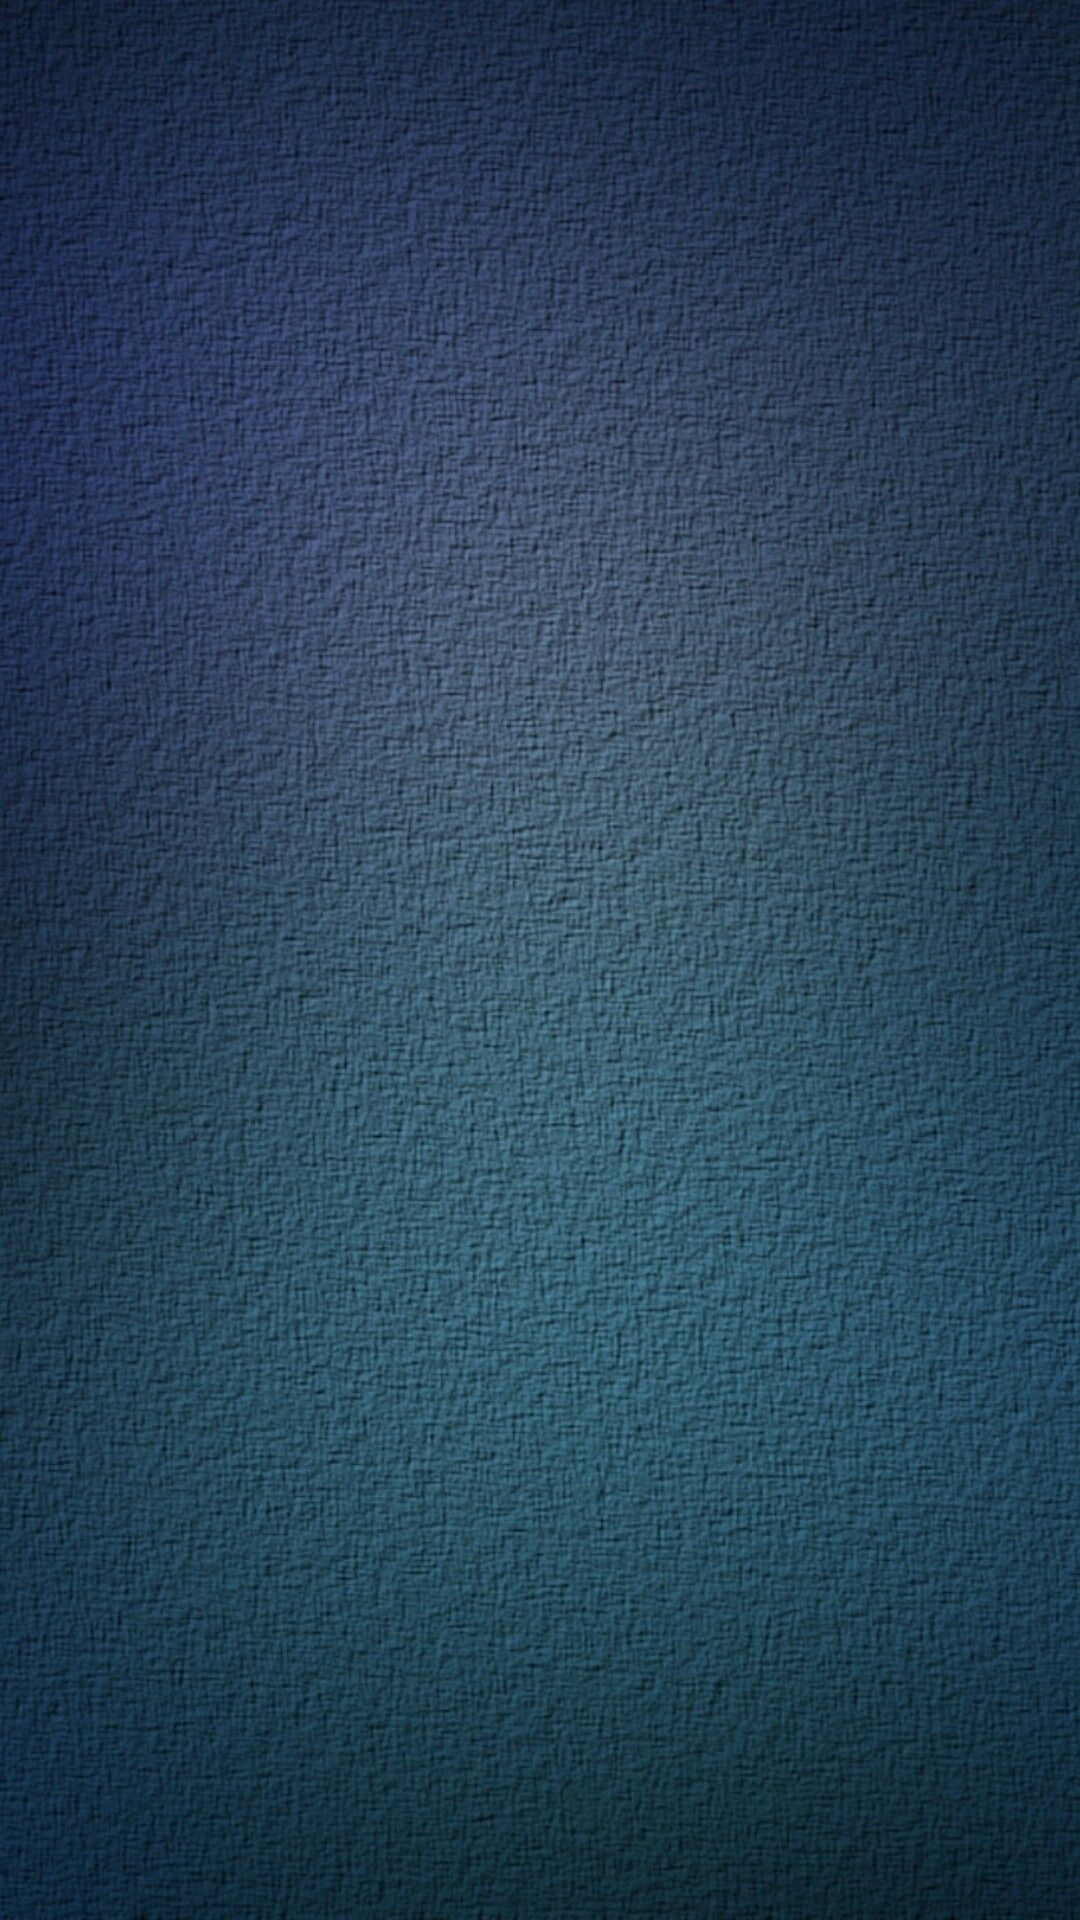 Blue Textures Wallpaper